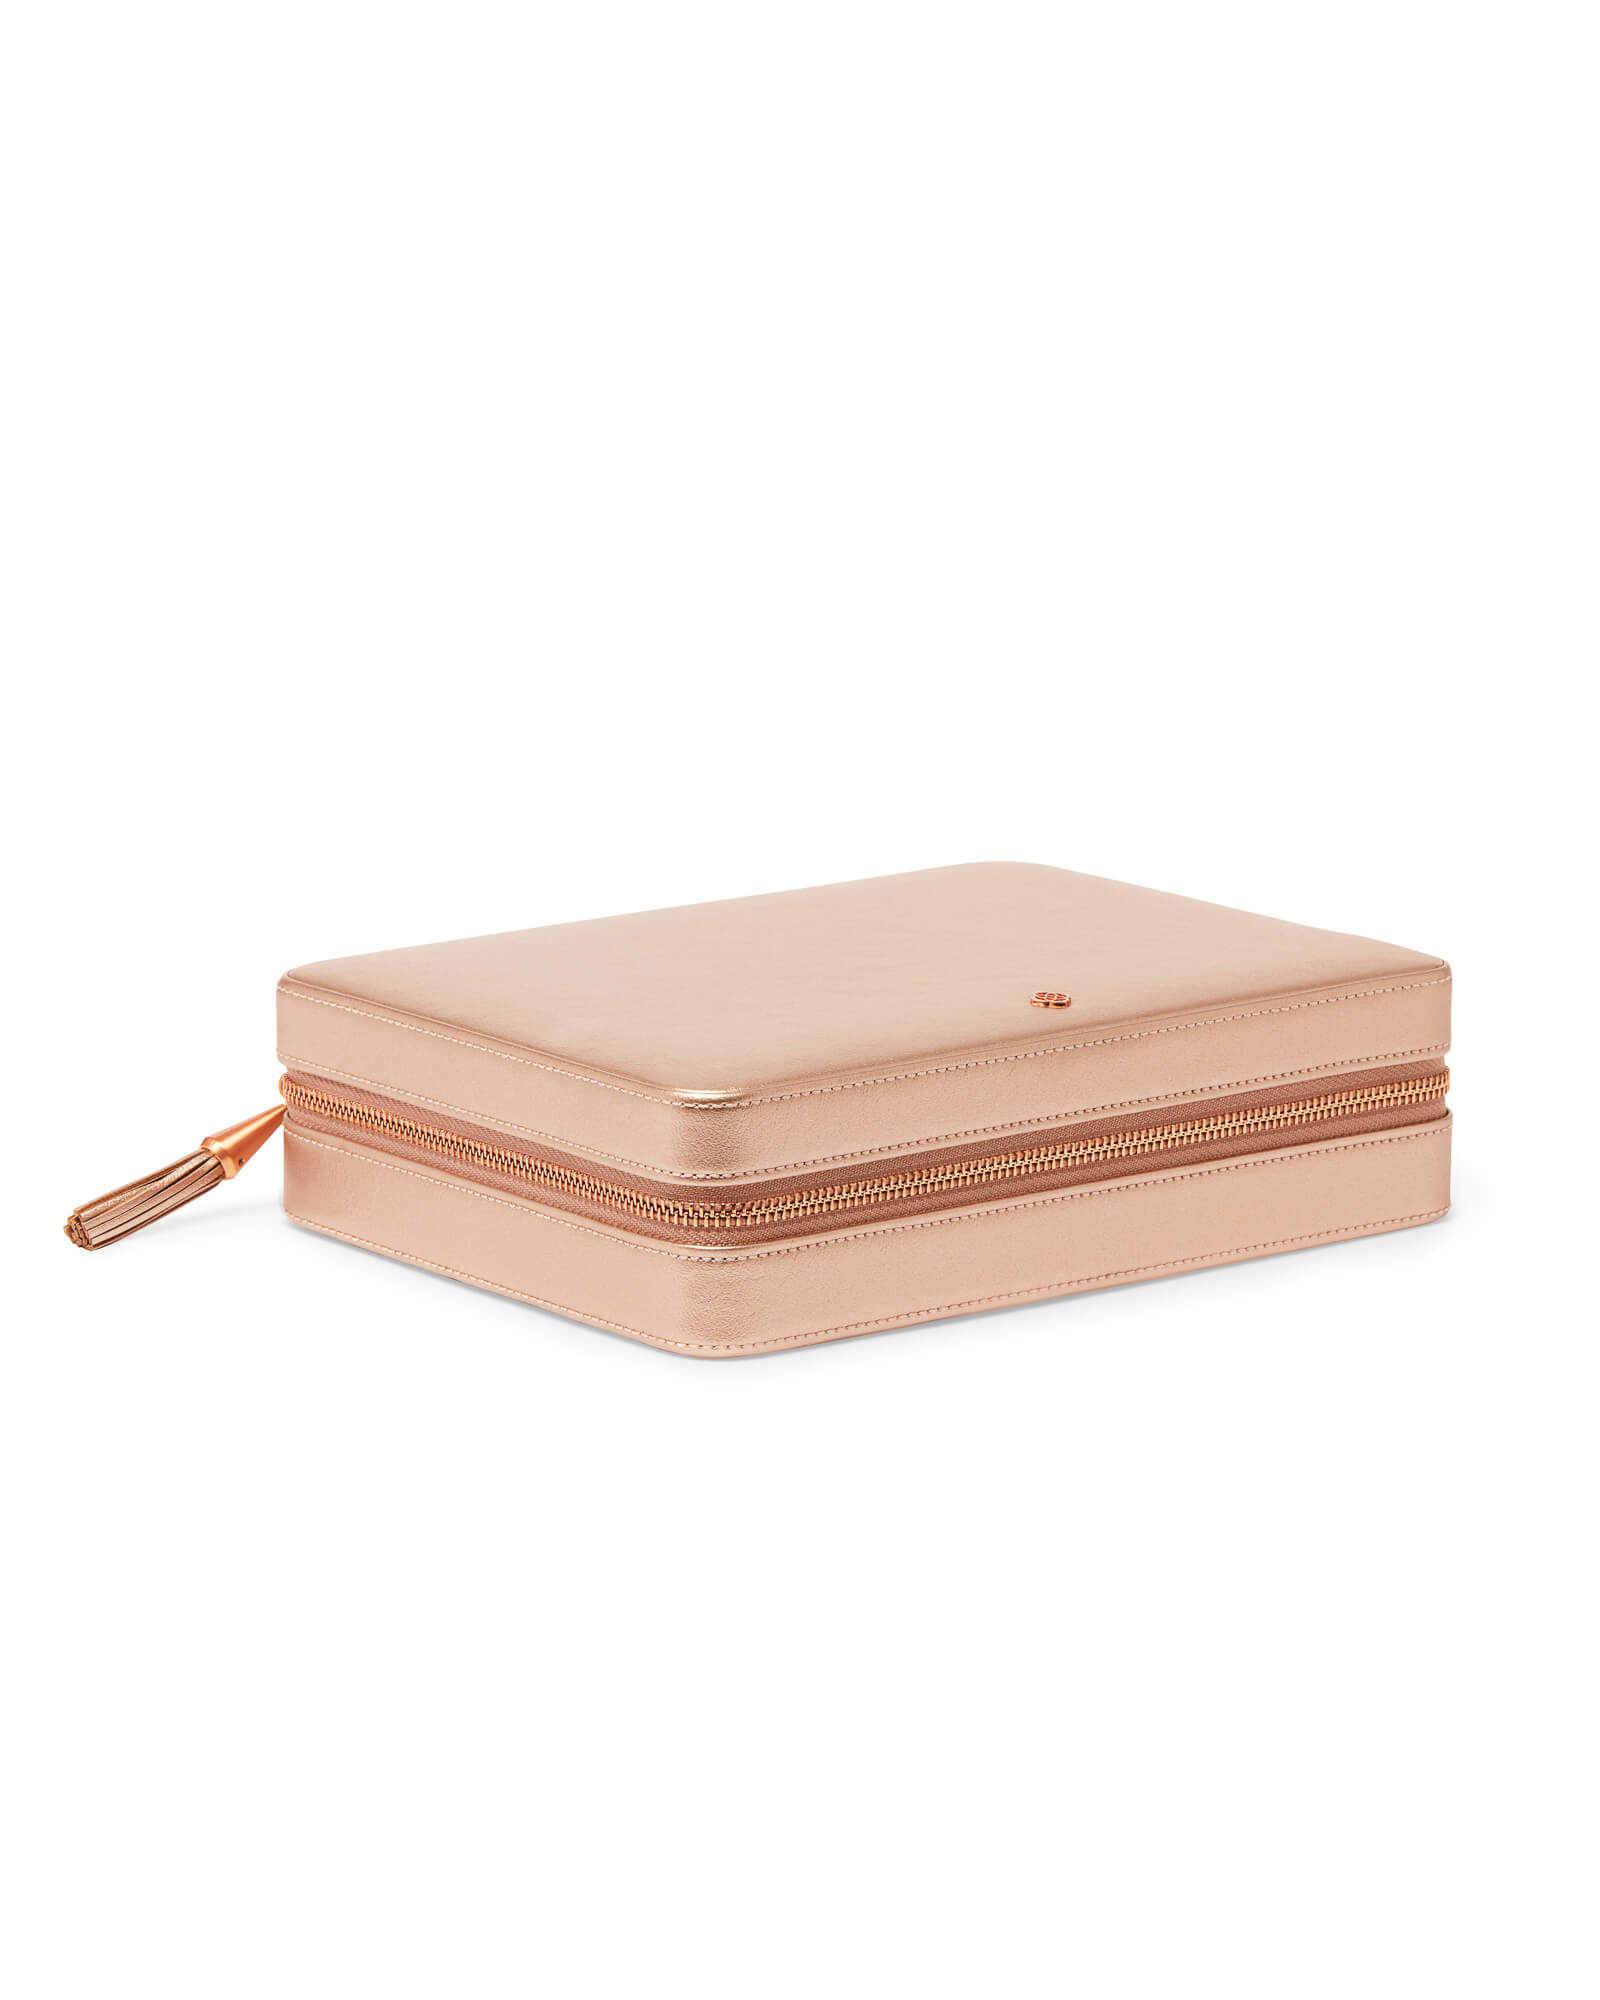 Large Travel Jewelry Case in Rose Gold